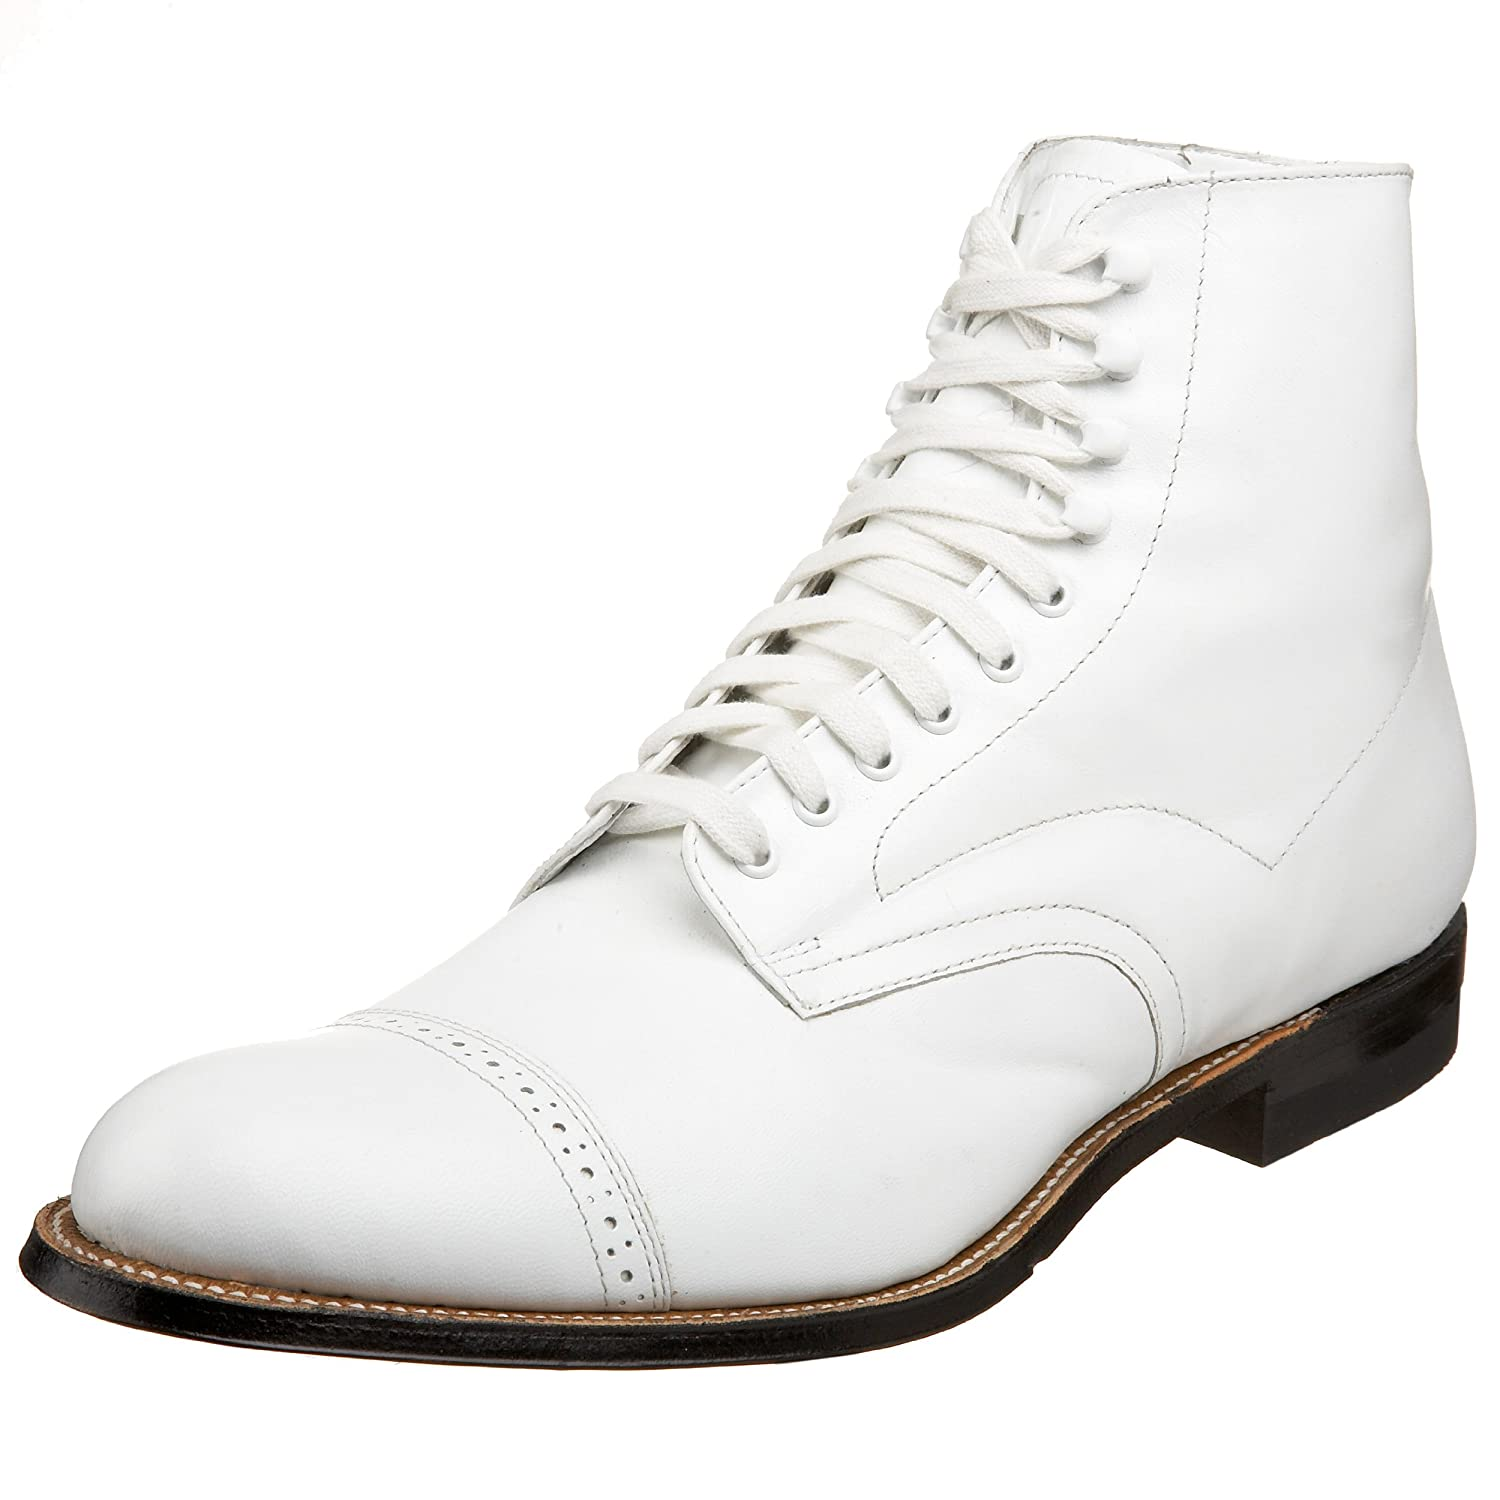 1920s Boardwalk Empire Shoes Stacy Adams Mens Madison Boot $135.00 AT vintagedancer.com